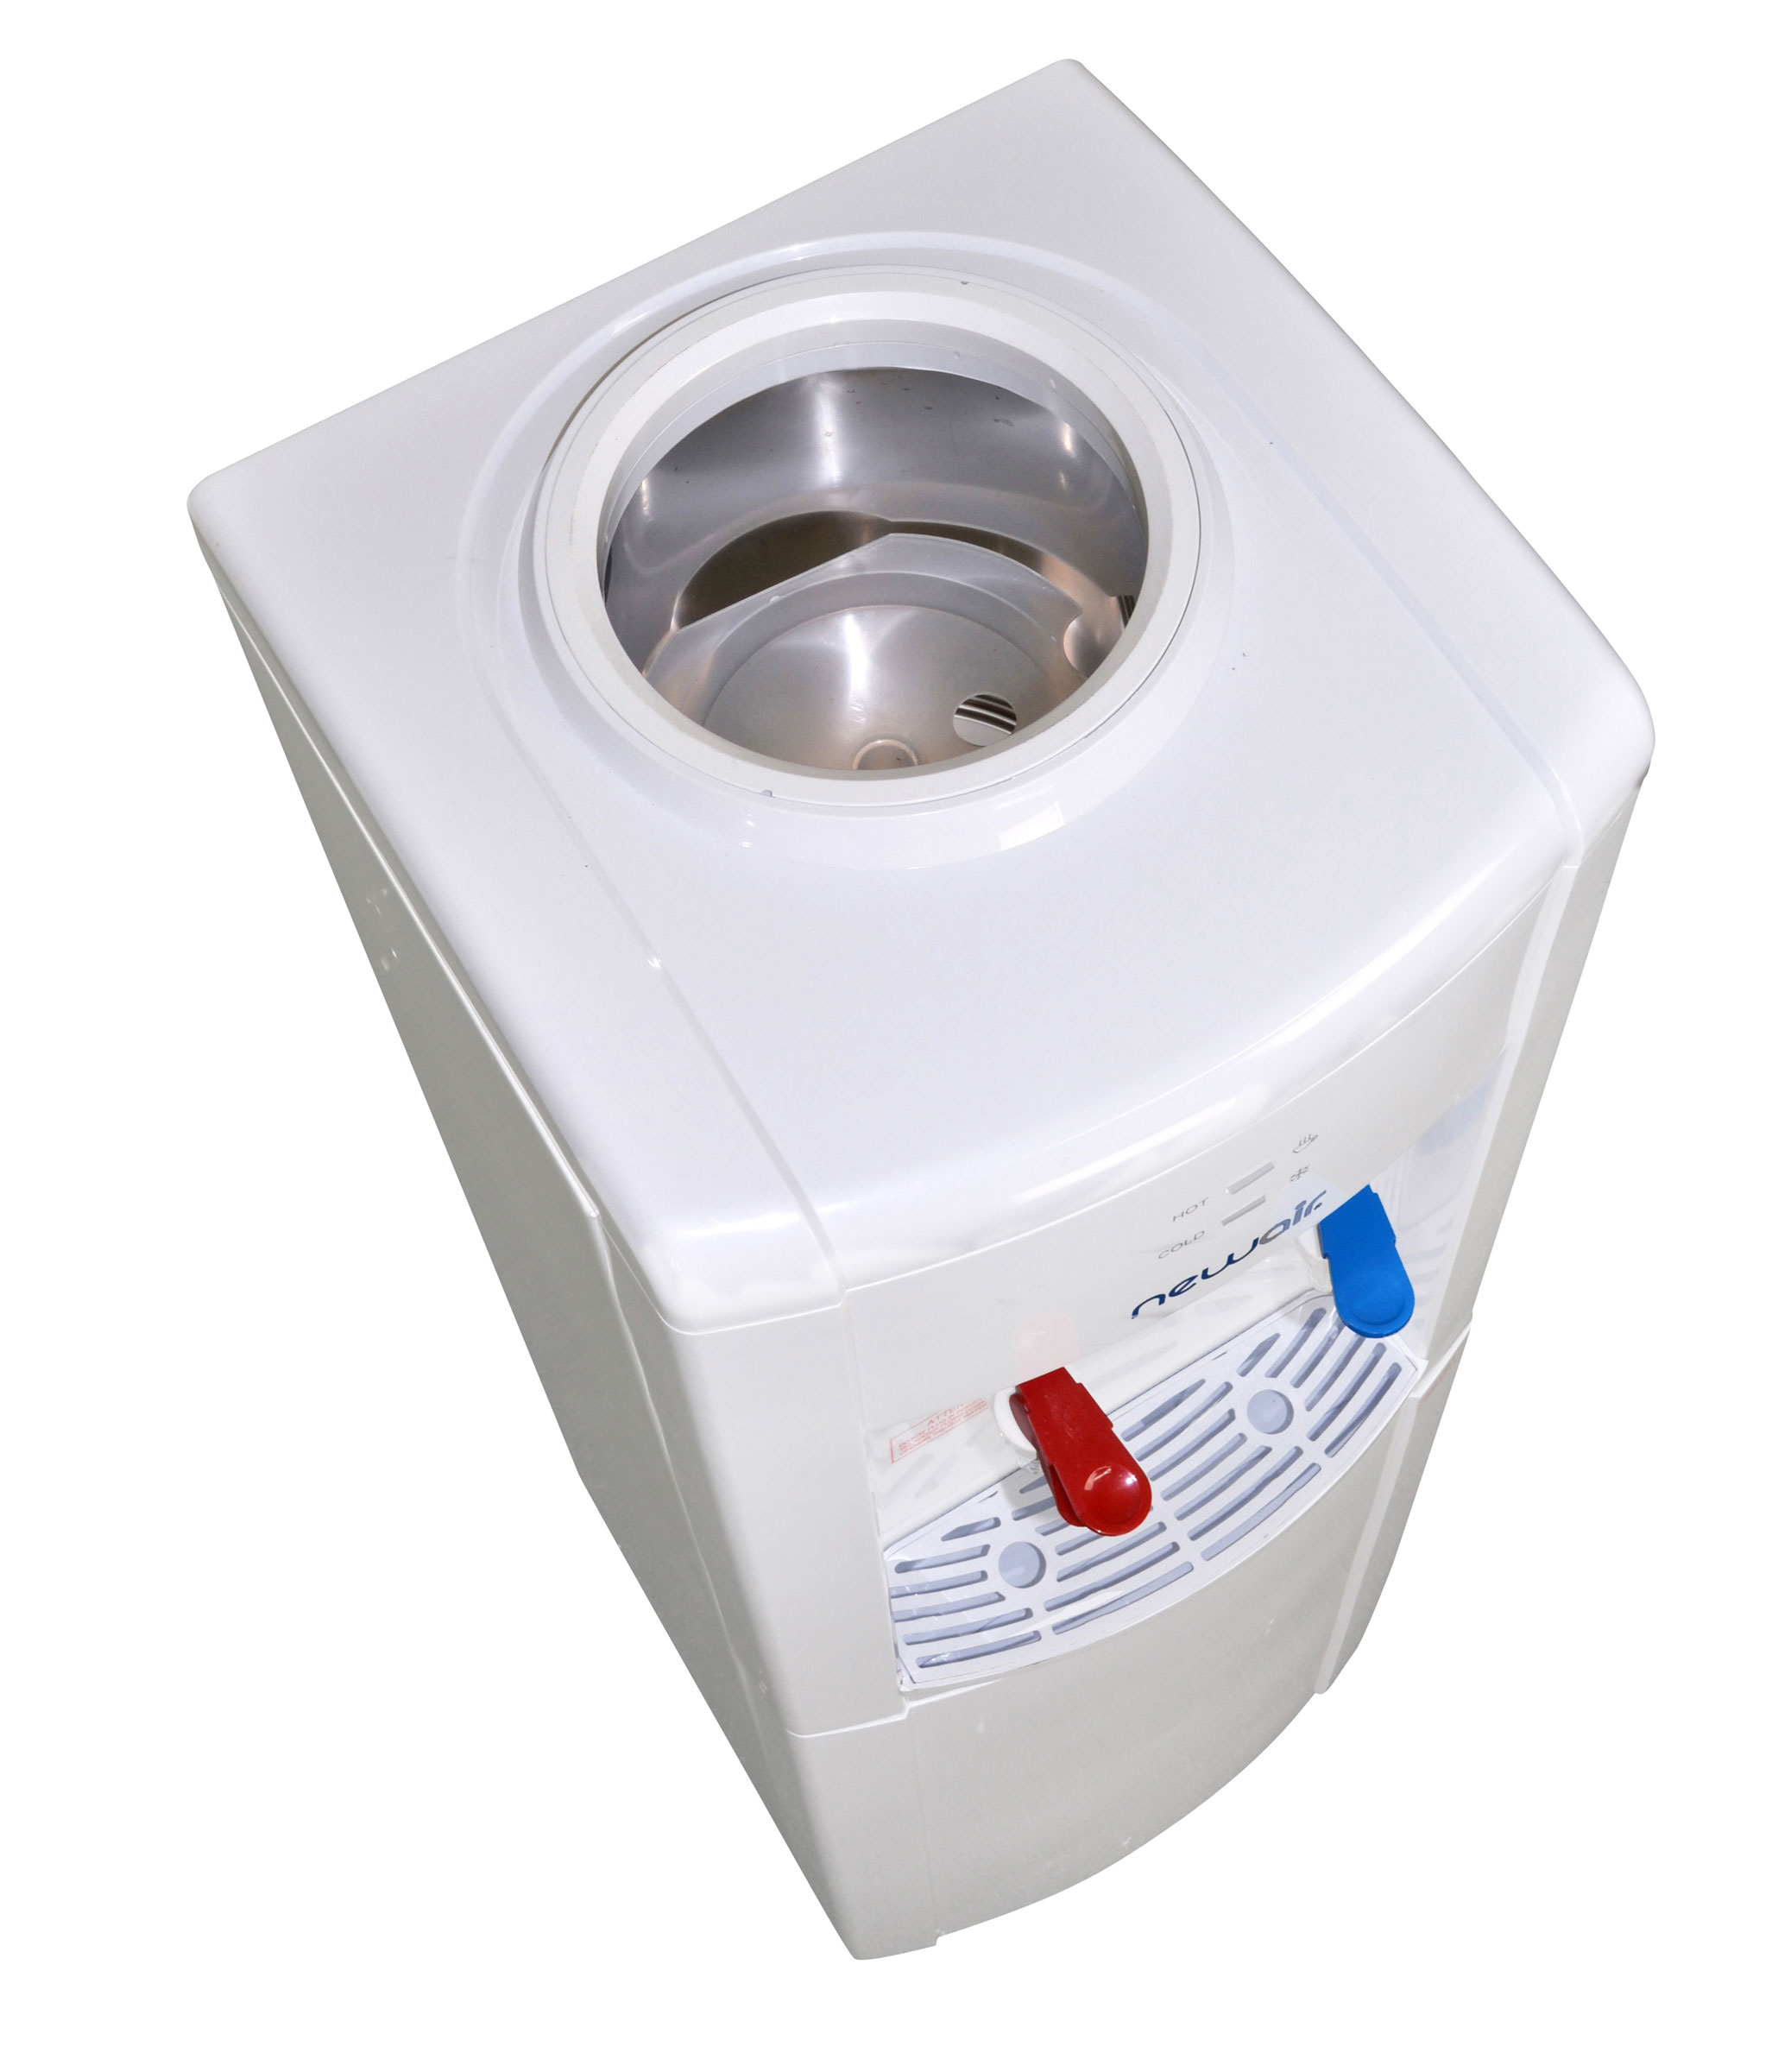 NewAir WCD-200W Water Dispenser